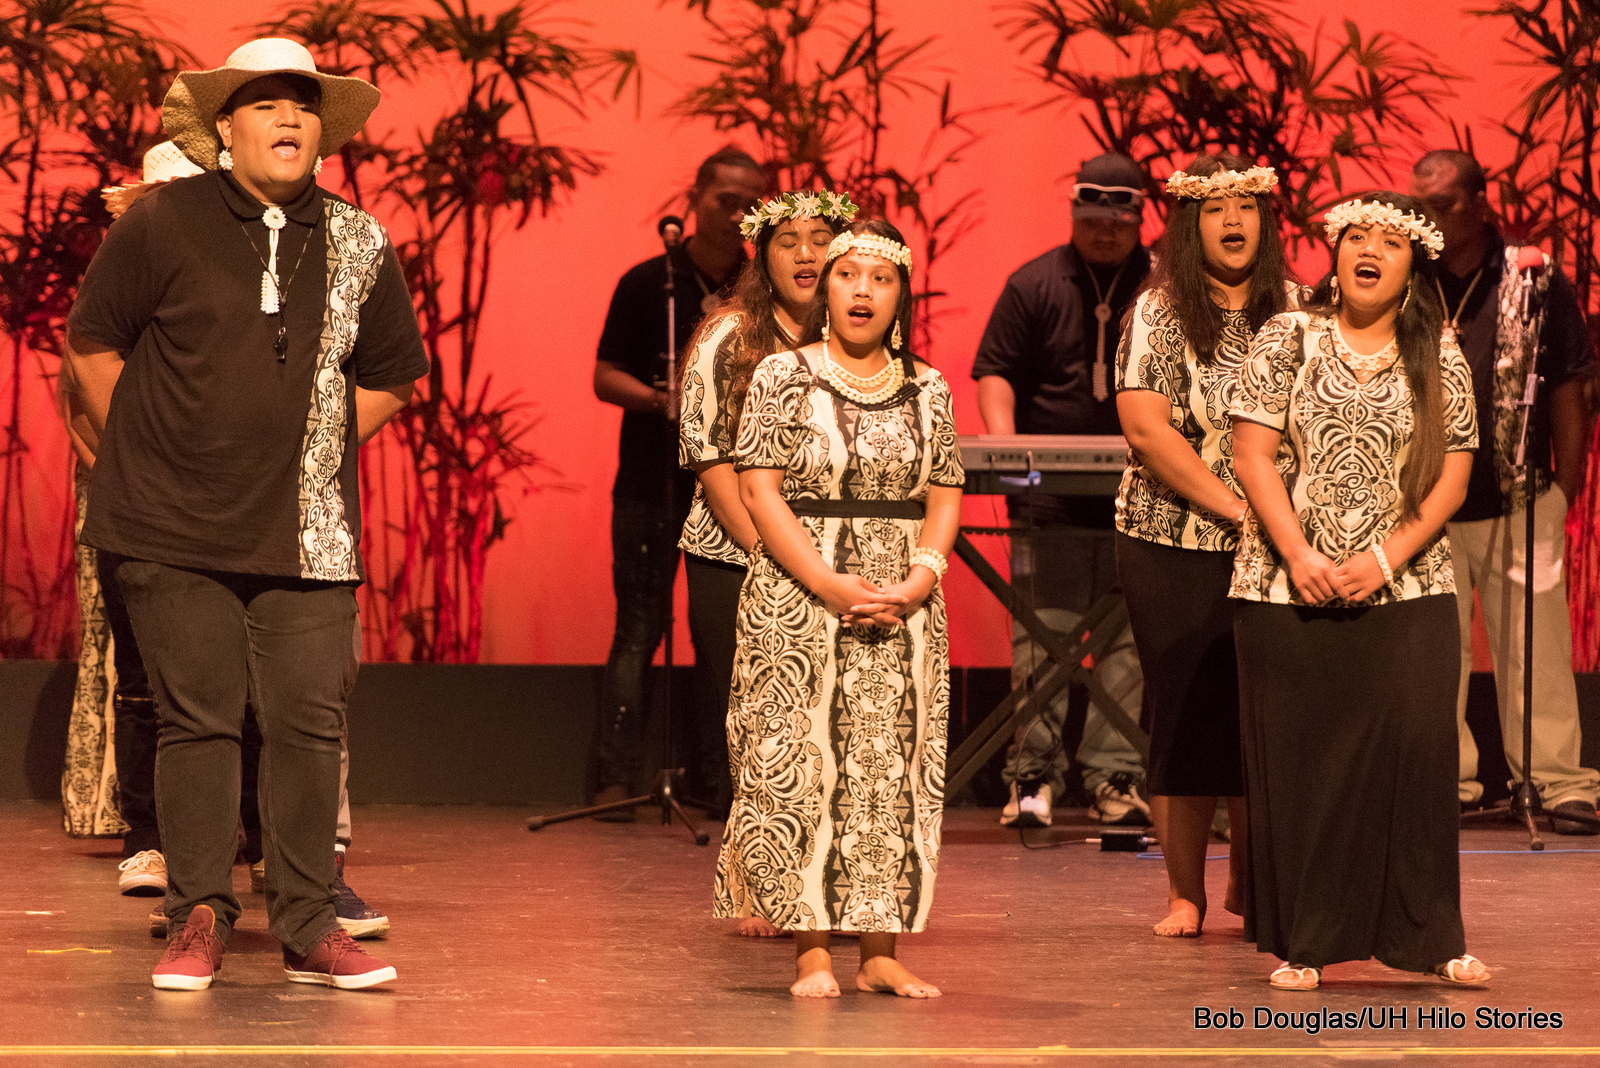 Group wearing black with ethnic print stripe on men's shirts and print on women's dresses. Men have hats, women shell hair band.